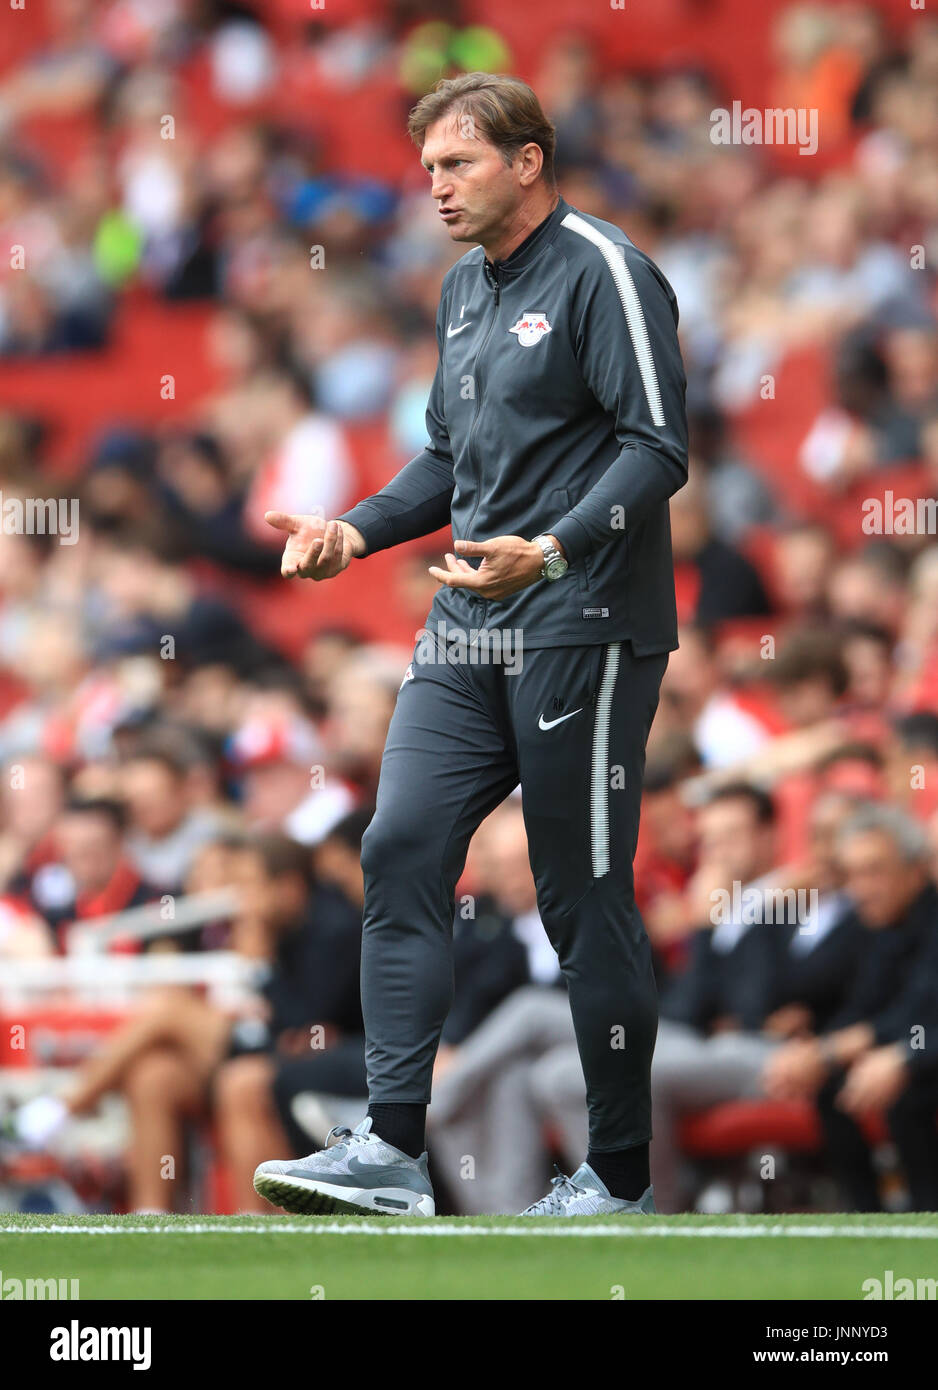 Red Bull Leipzig Manager Ralph Hasenhuttl During The Emirates Cup Stock Photo Alamy